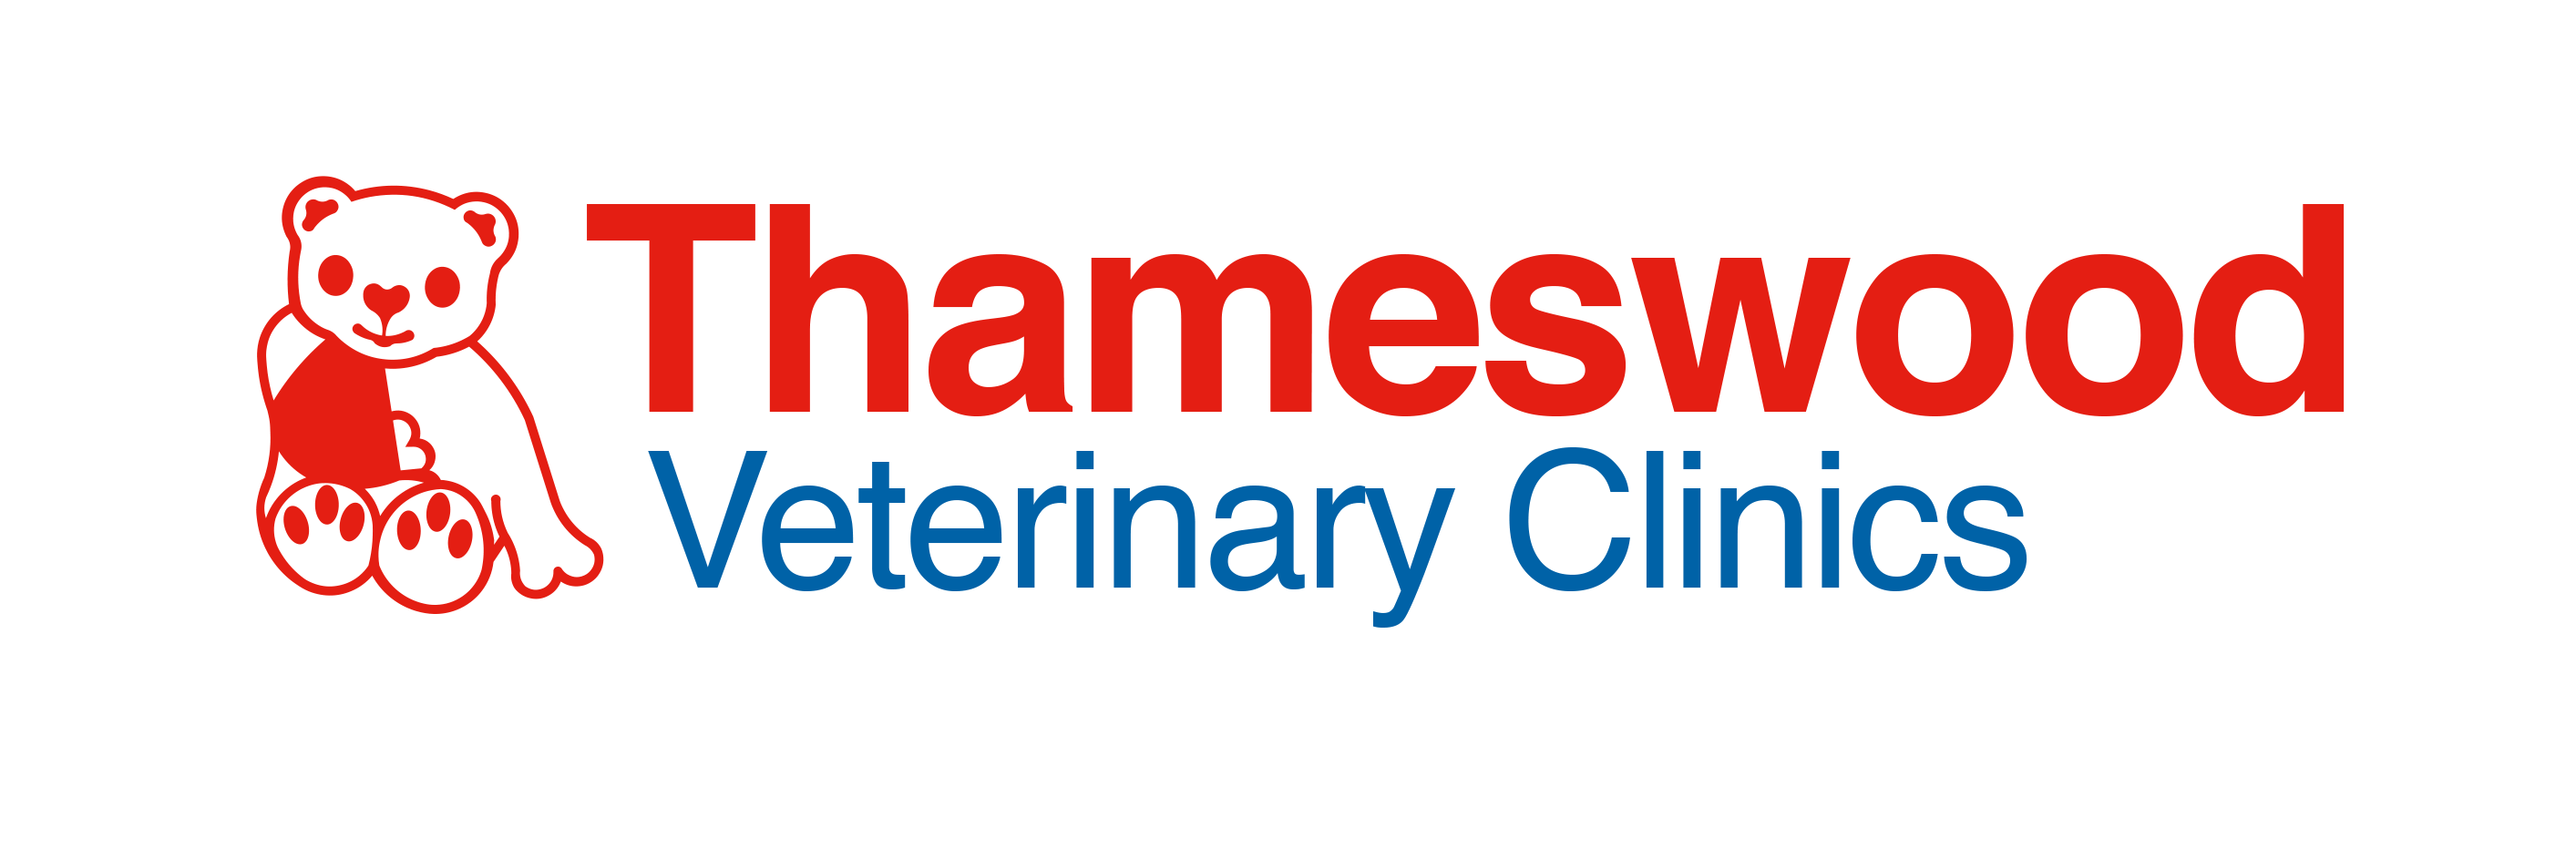 Thameswood Veterinary Clinic - Greenbridge Road